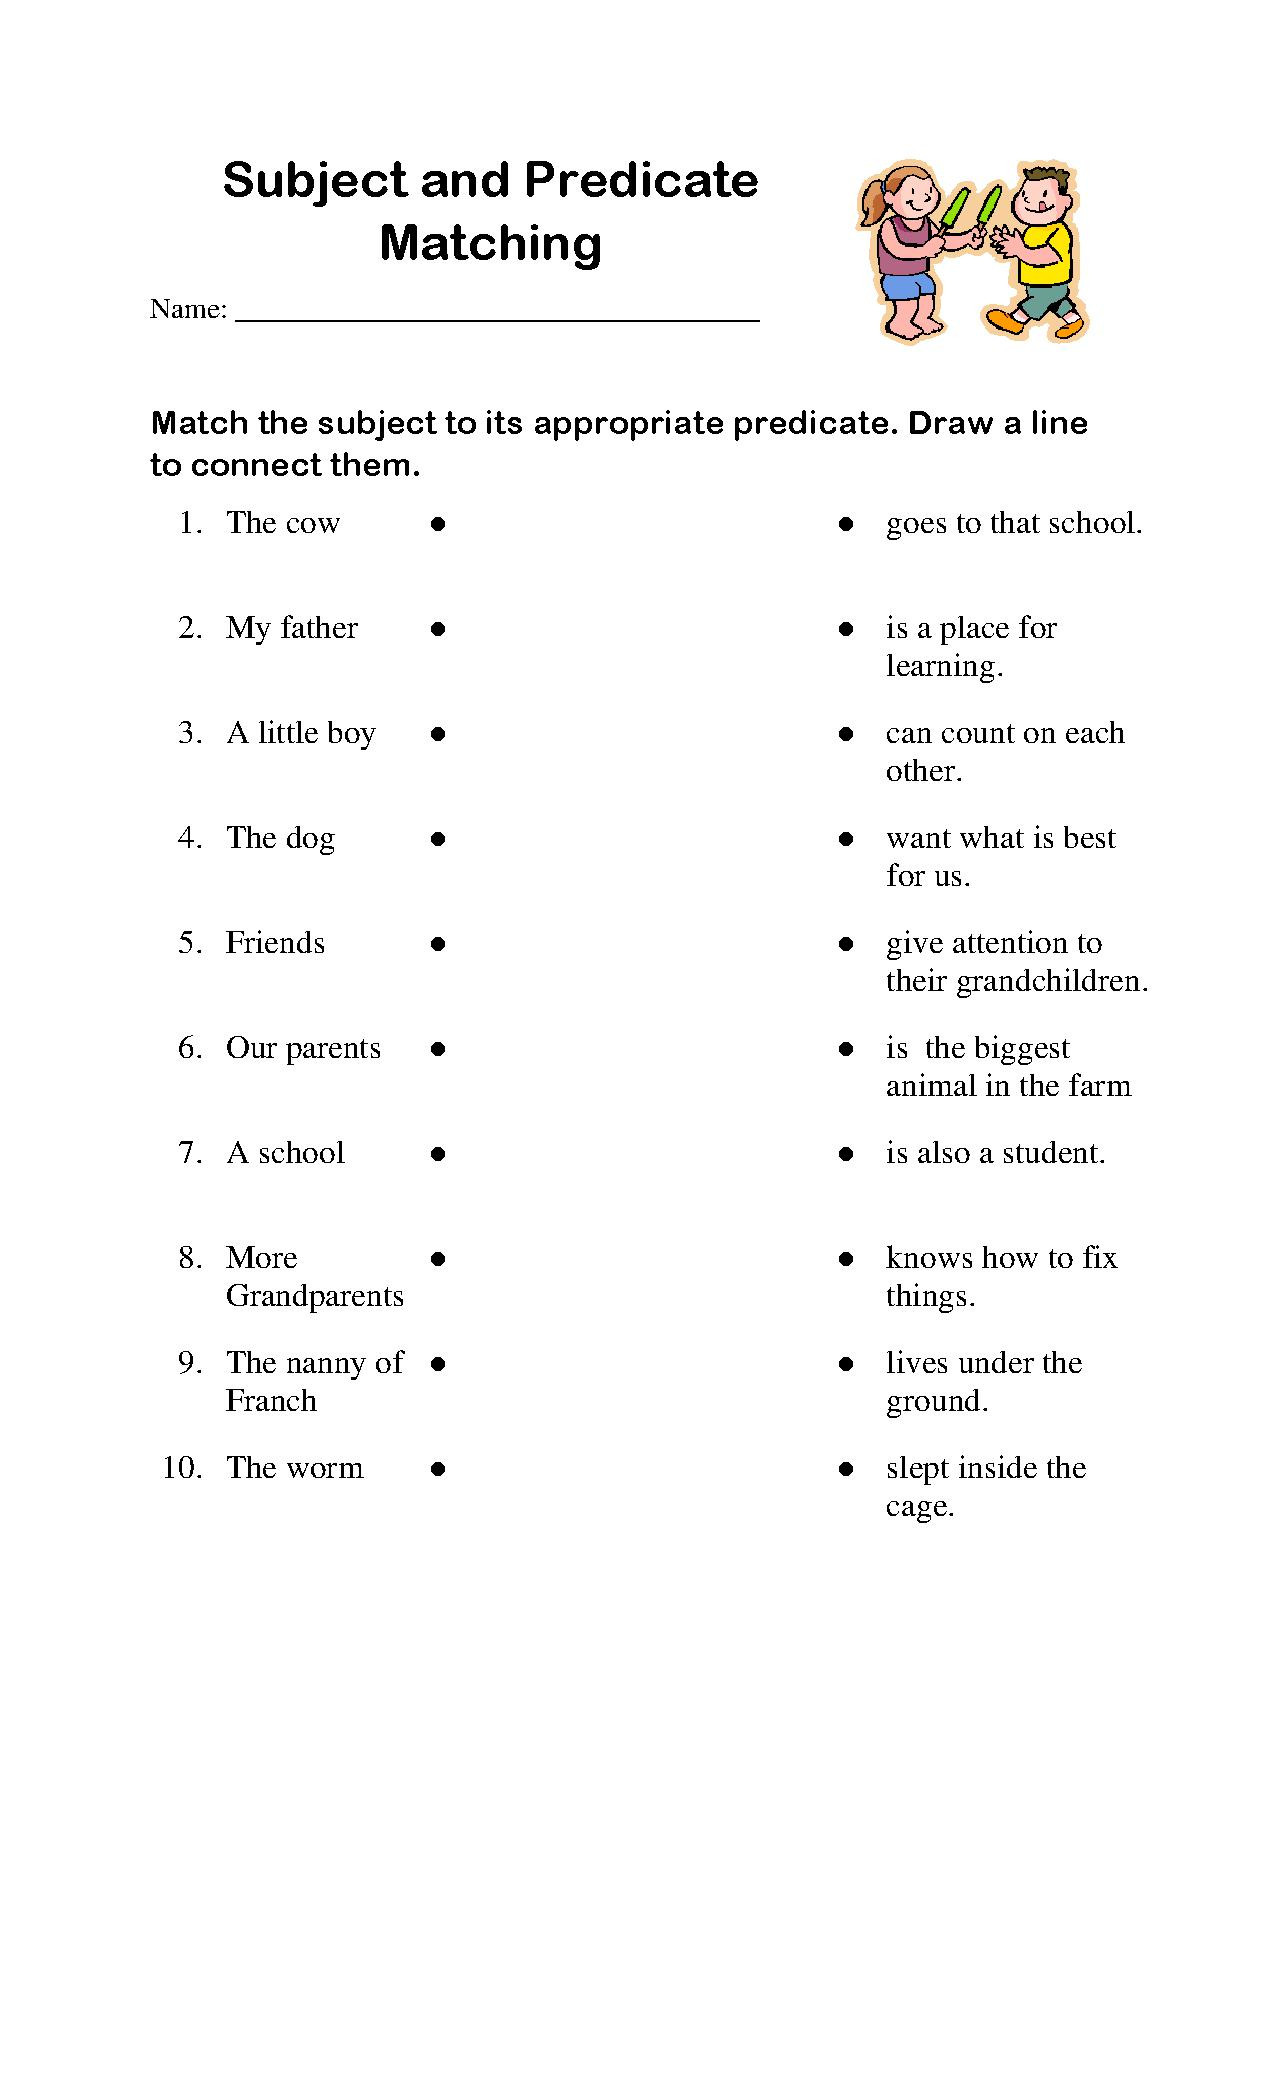 Subject and Predicate Worksheet Smarty Fox